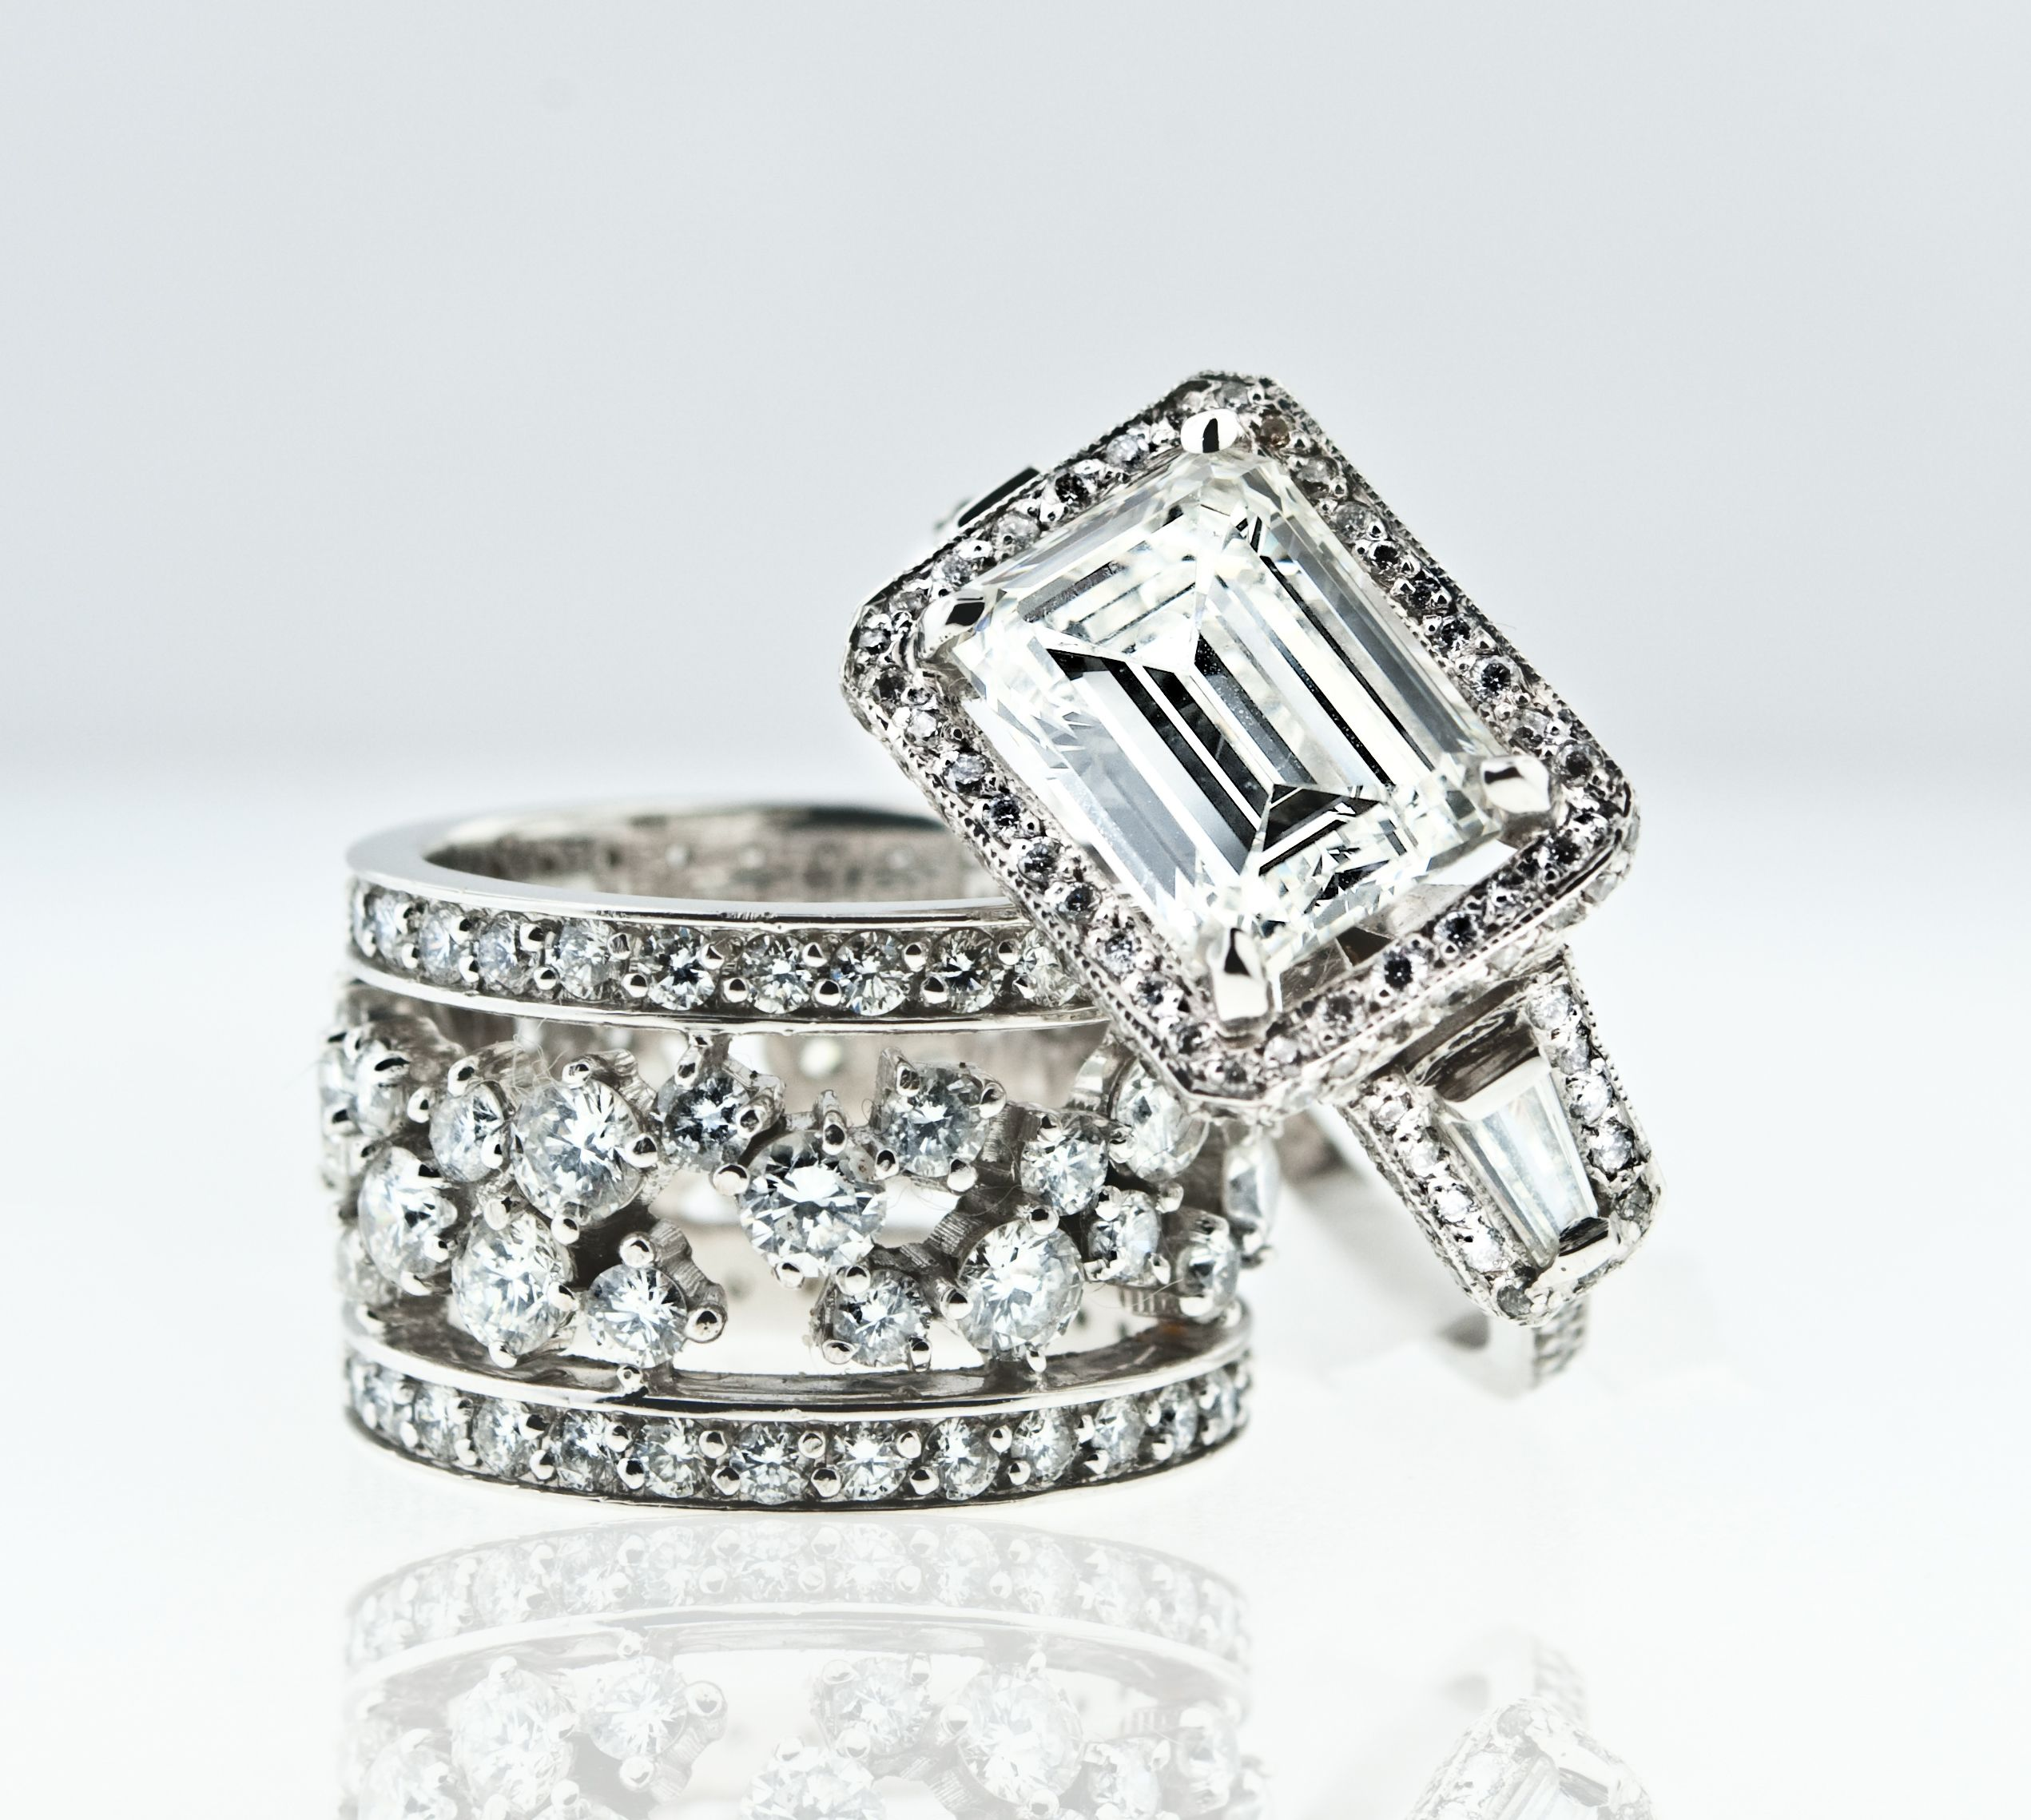 asymmetrical to details me a new or engagement ring jewellery through near bypass jewelers product pin locate for click